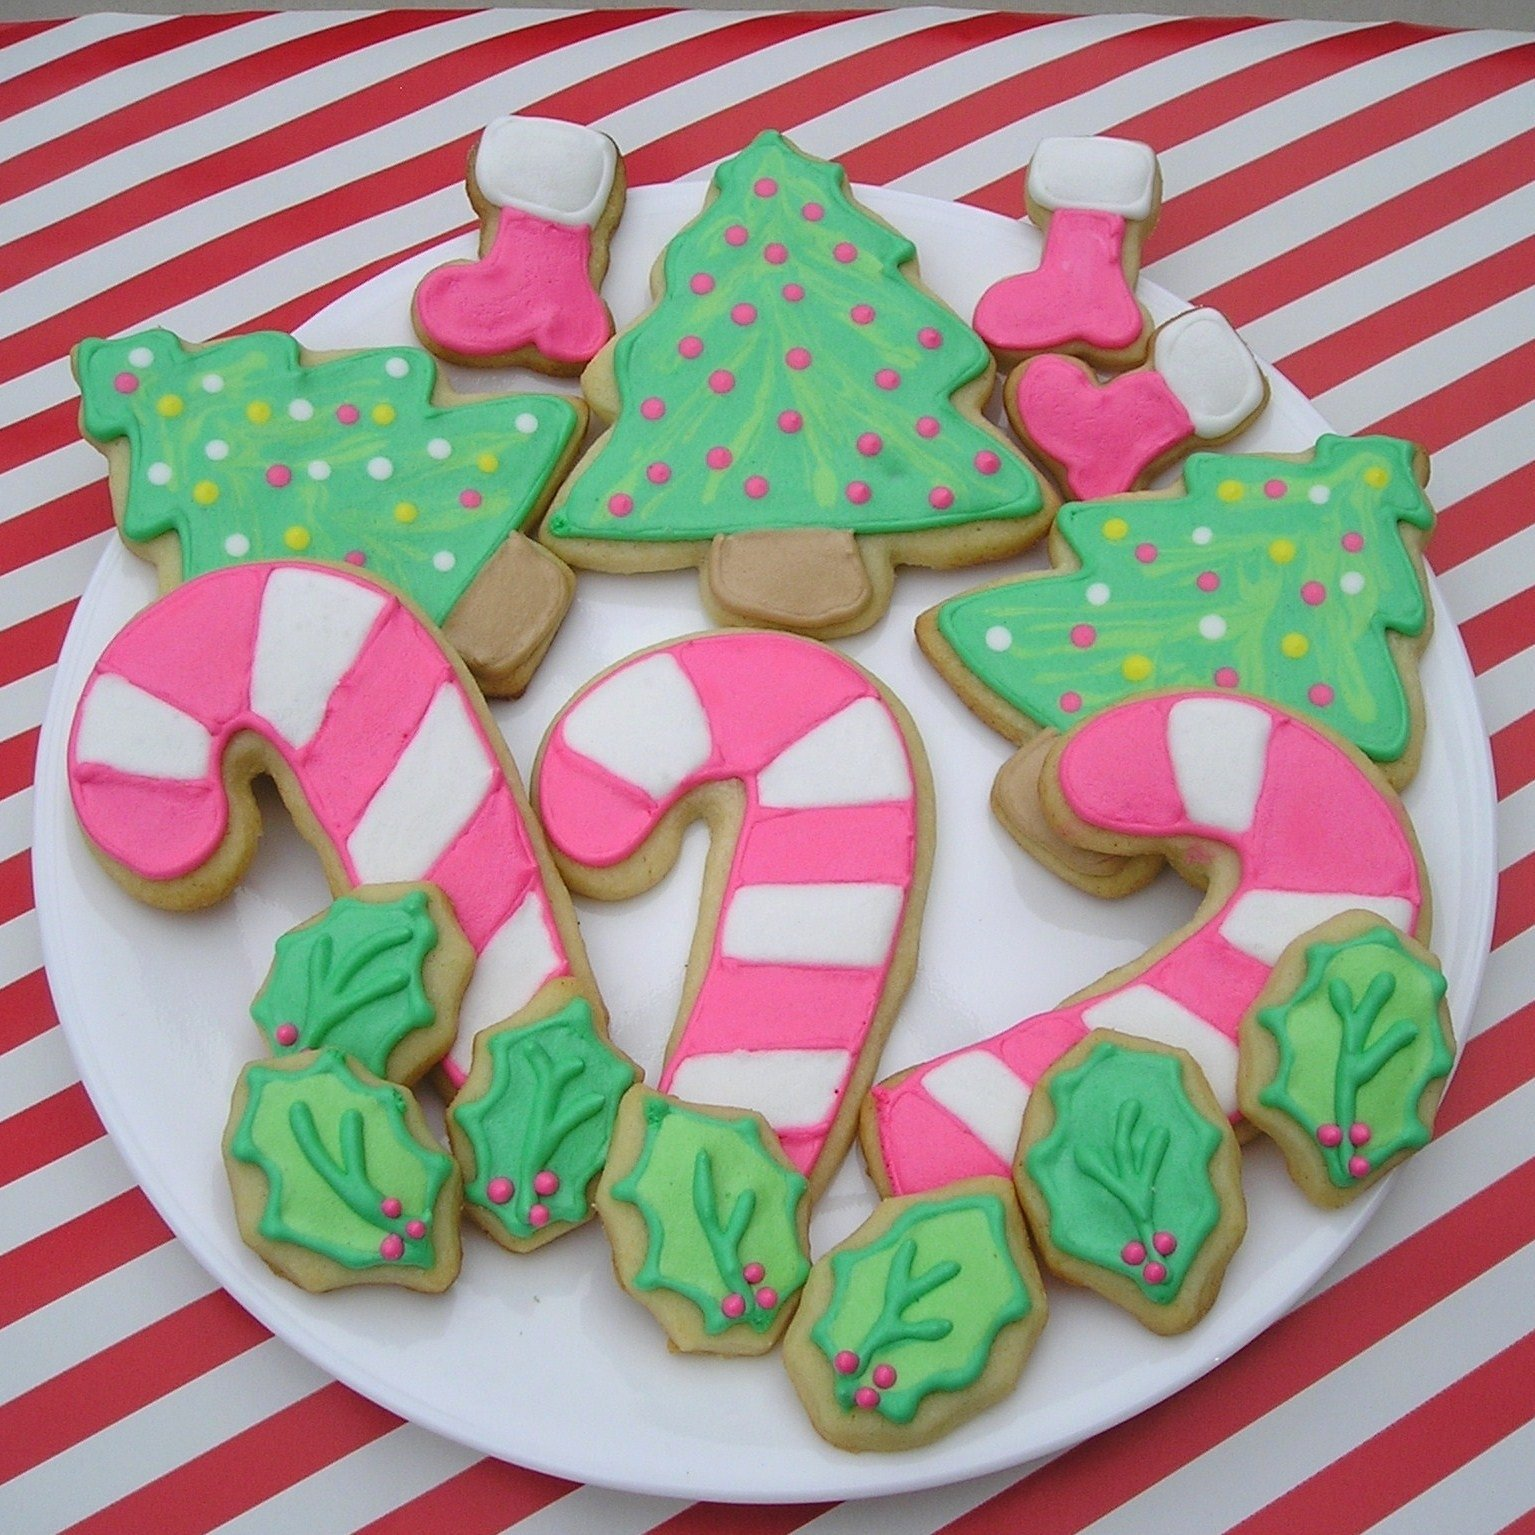 10 Ideal Christmas Sugar Cookie Decorating Ideas sugar dot cookies about me 2020